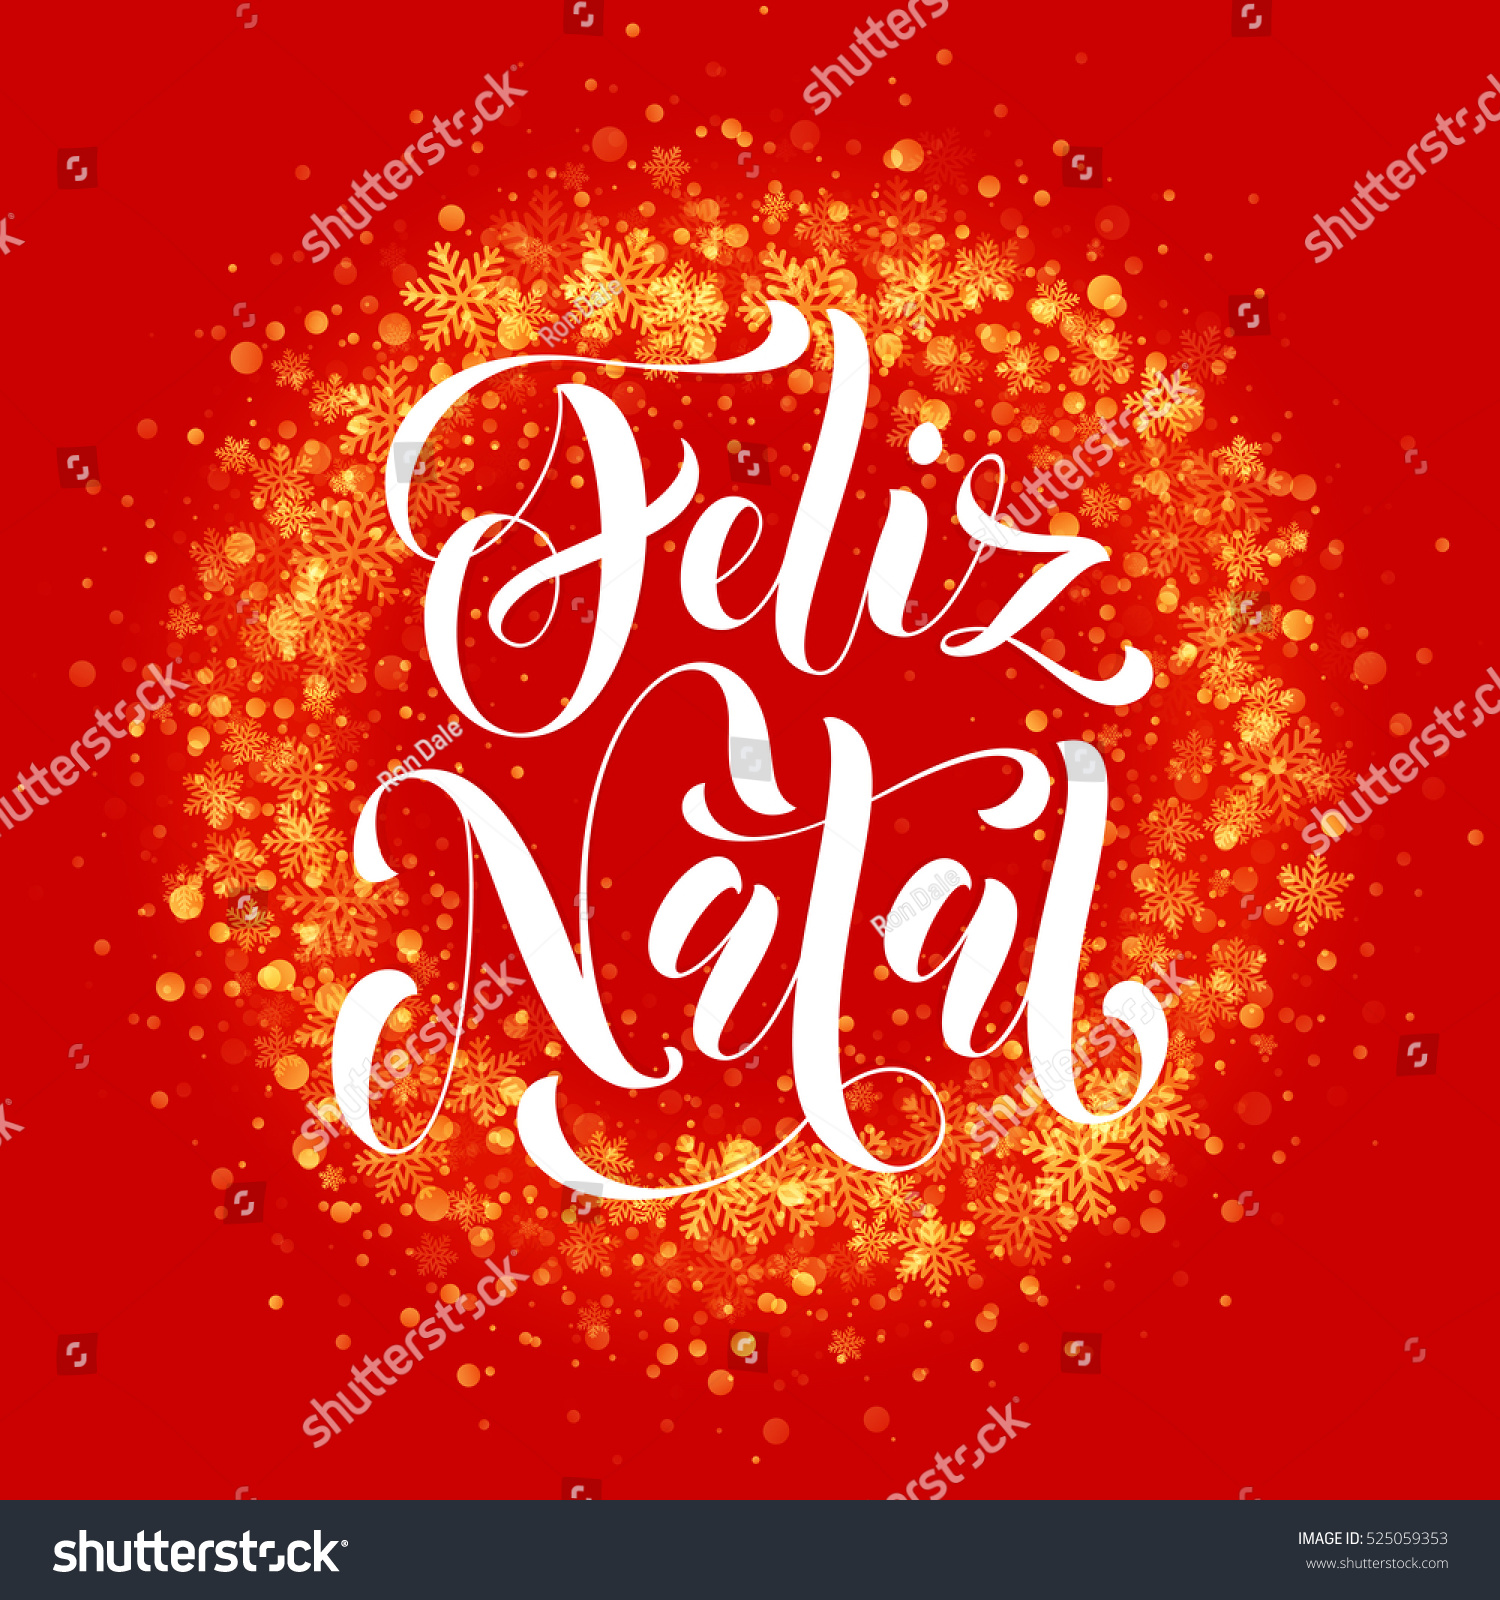 Portuguese Merry Christmas Feliz Natal Wreath Stock Vector ...